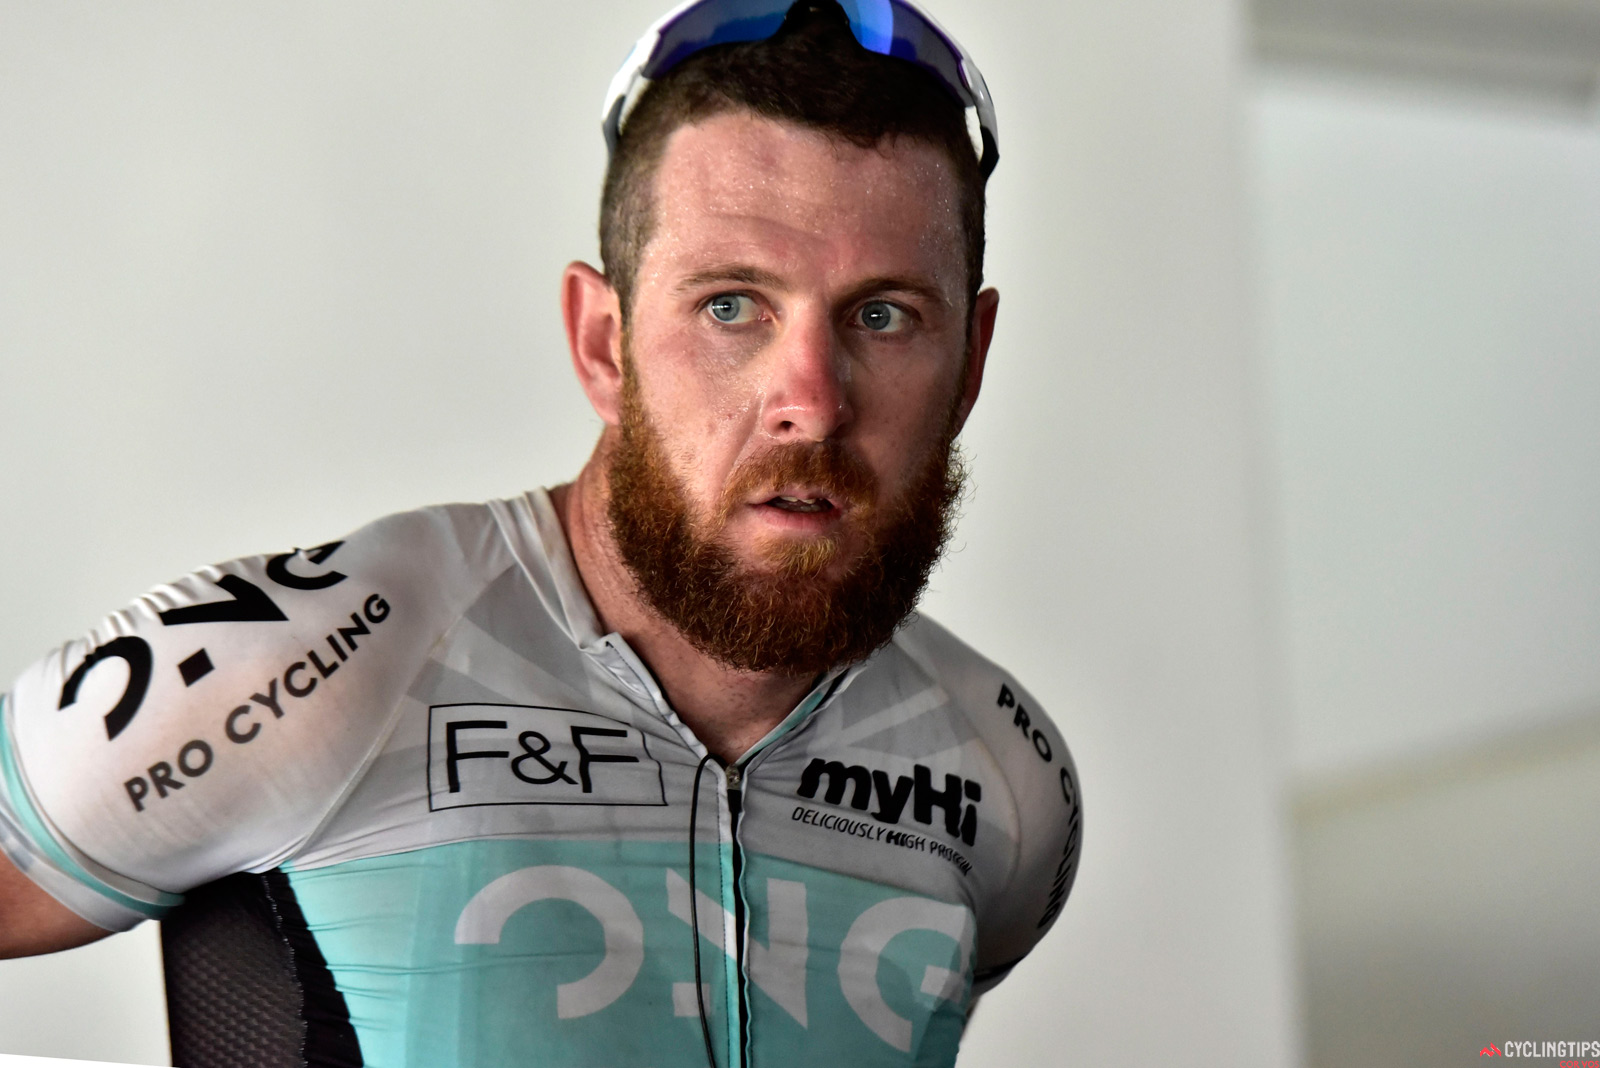 Goss' final season was with the One Pro Cycling team.